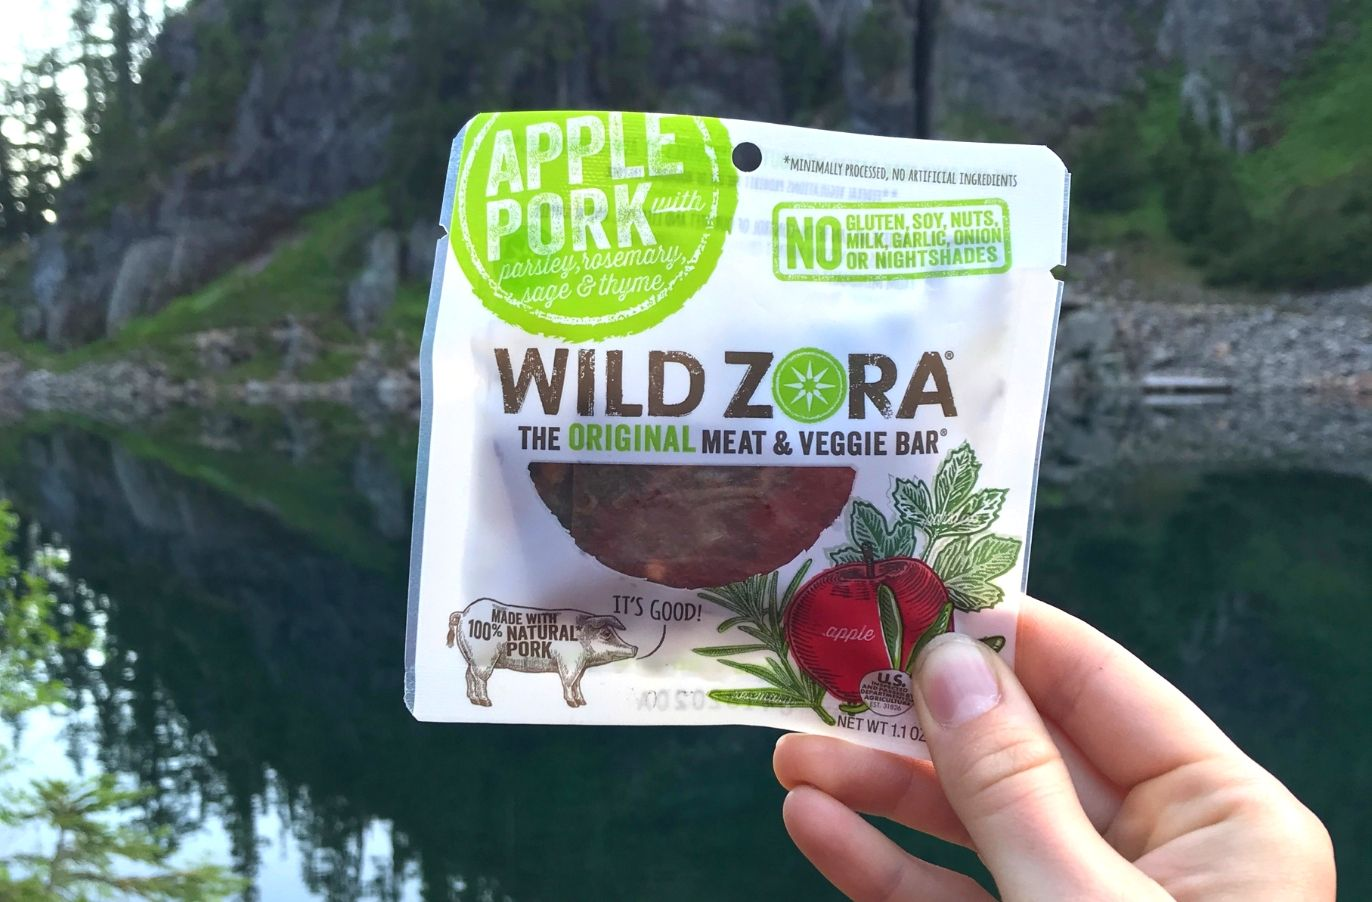 hand holding up an apple pork Wild Zora original meat and veggie bar